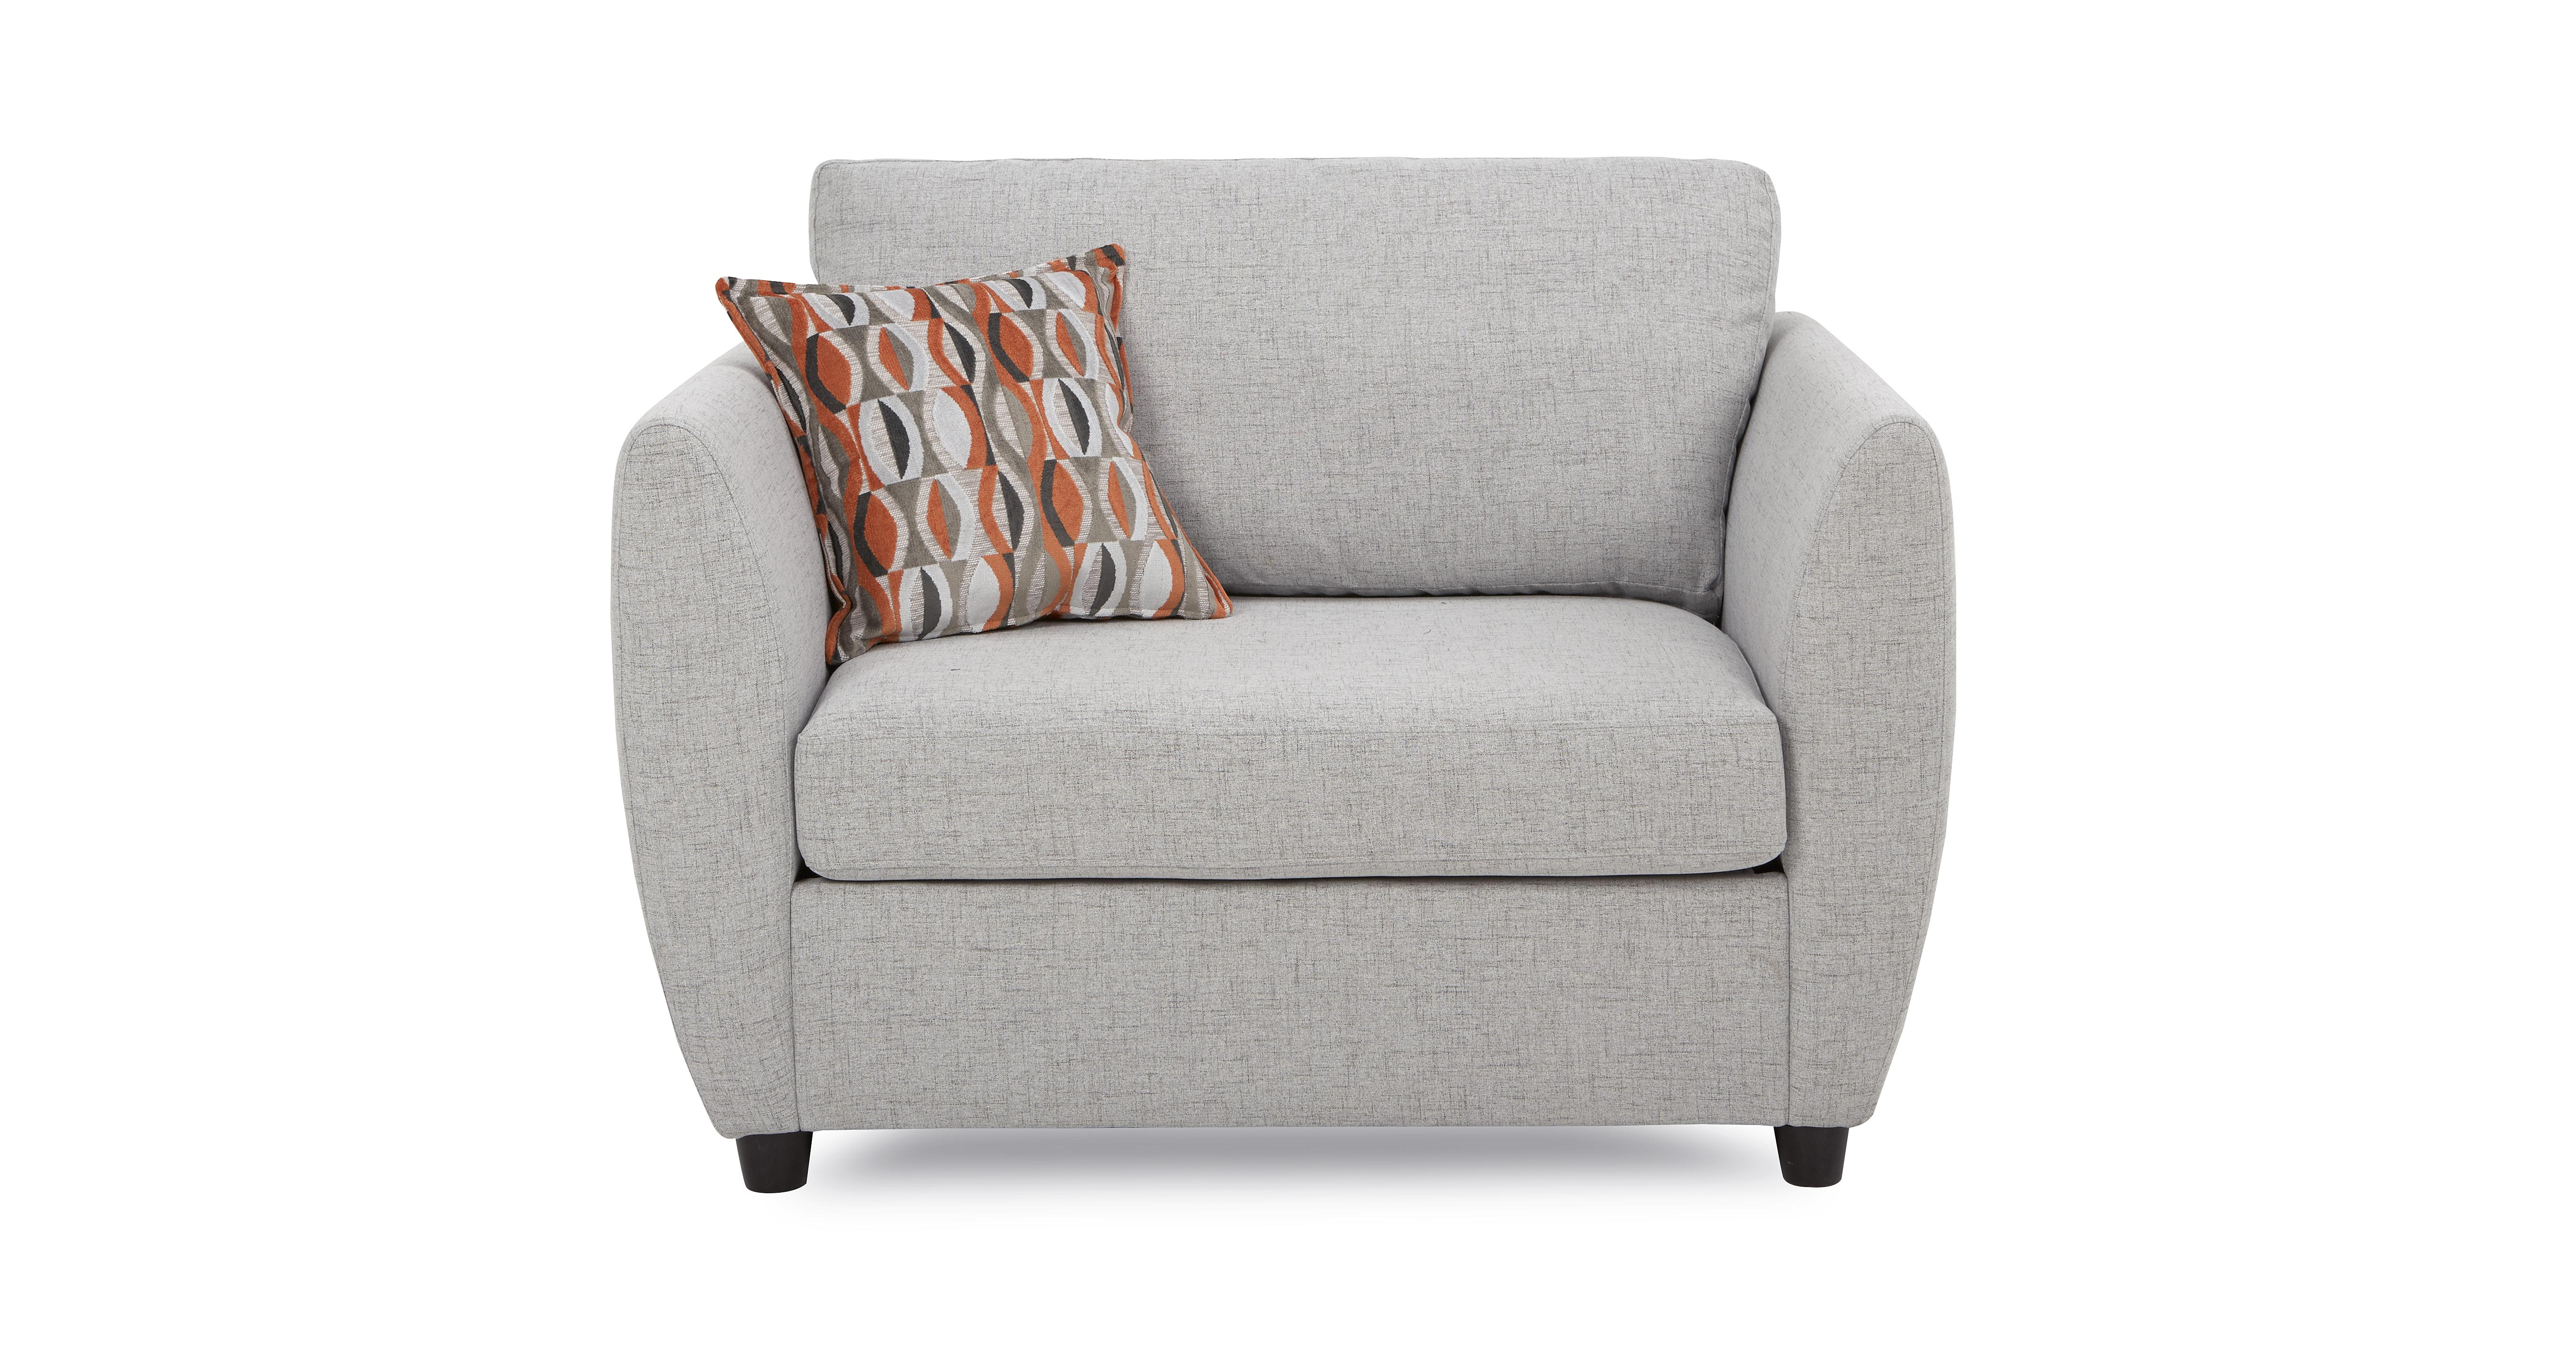 chairs chair room product to click package aaron ivory two and set packages change sofa image living cuddler